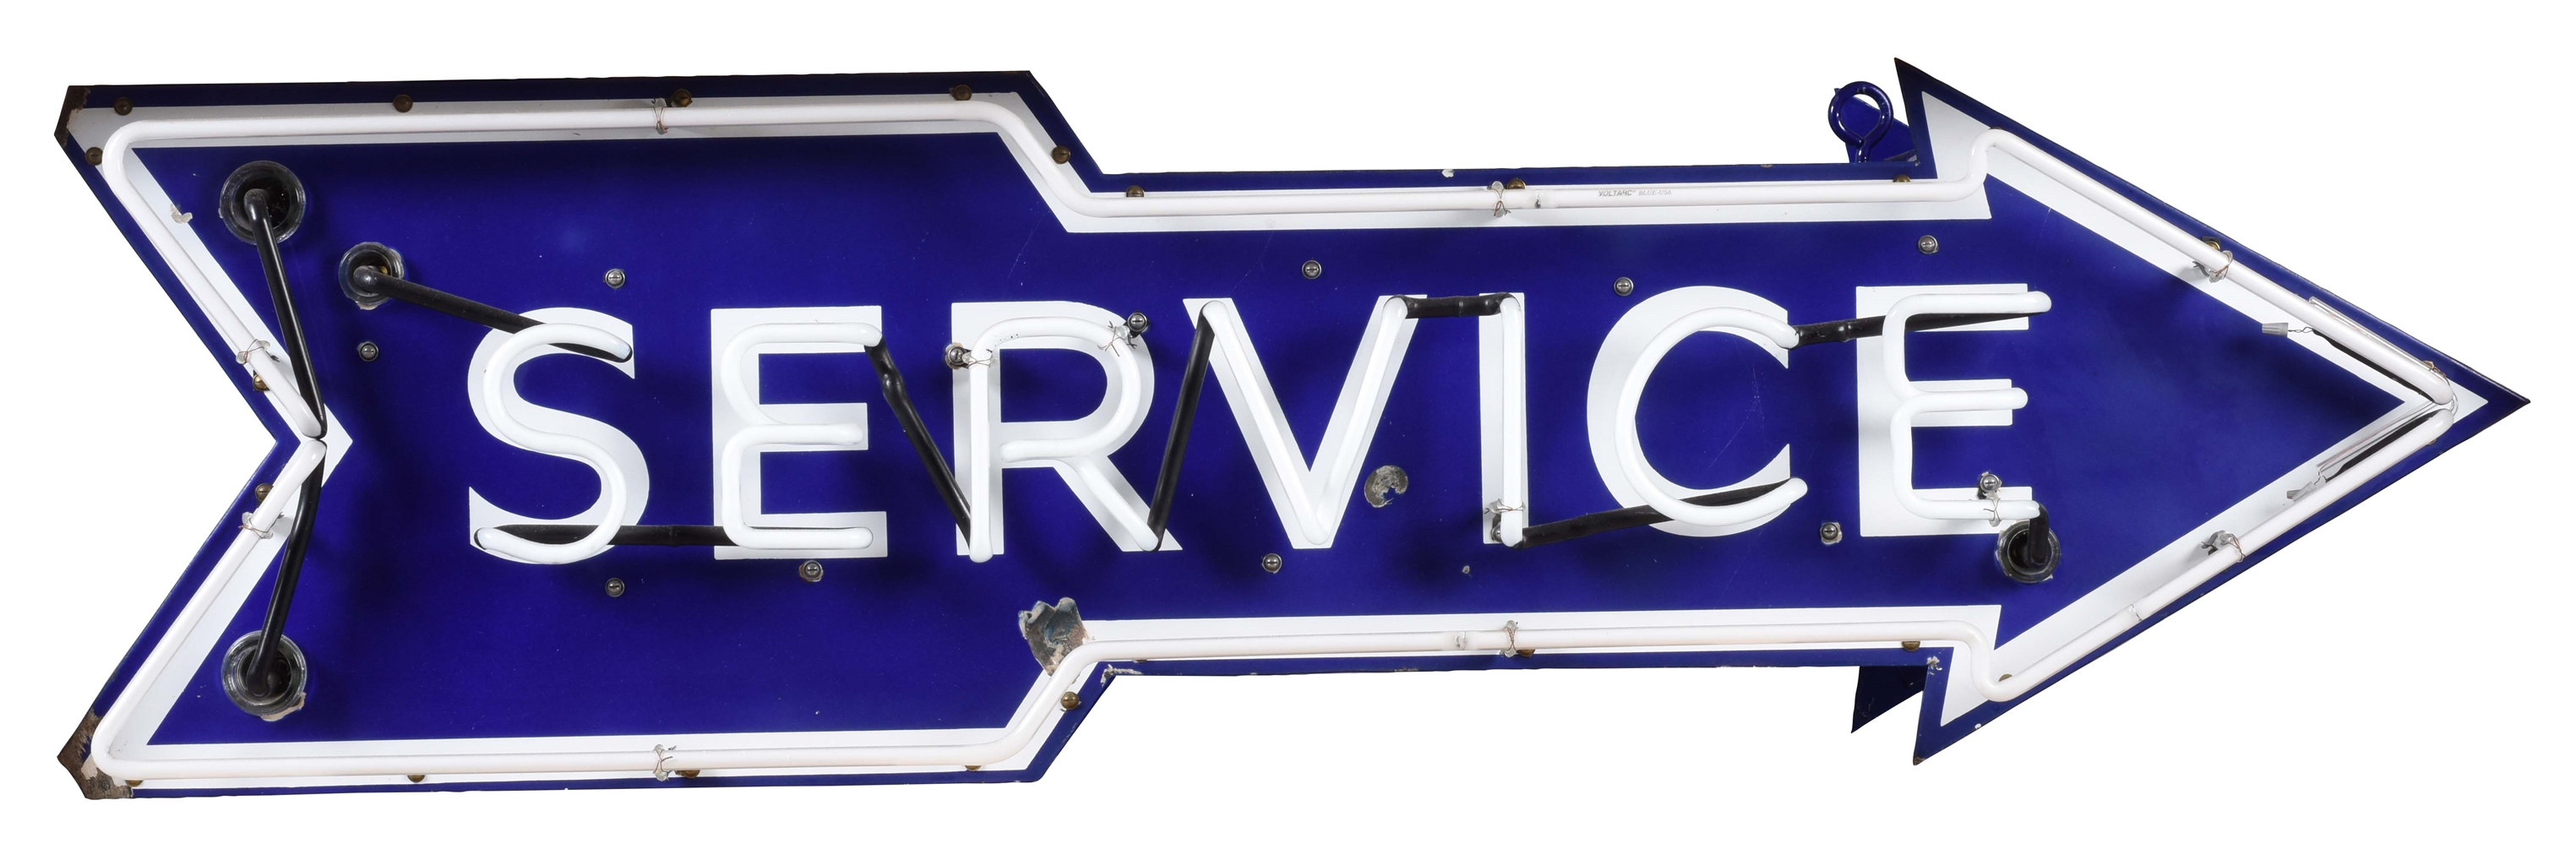 AUTOMOTIVE SERVICE DIE-CUT ARROW DOUBLE SIDED PORCELAIN NEON SIGN.